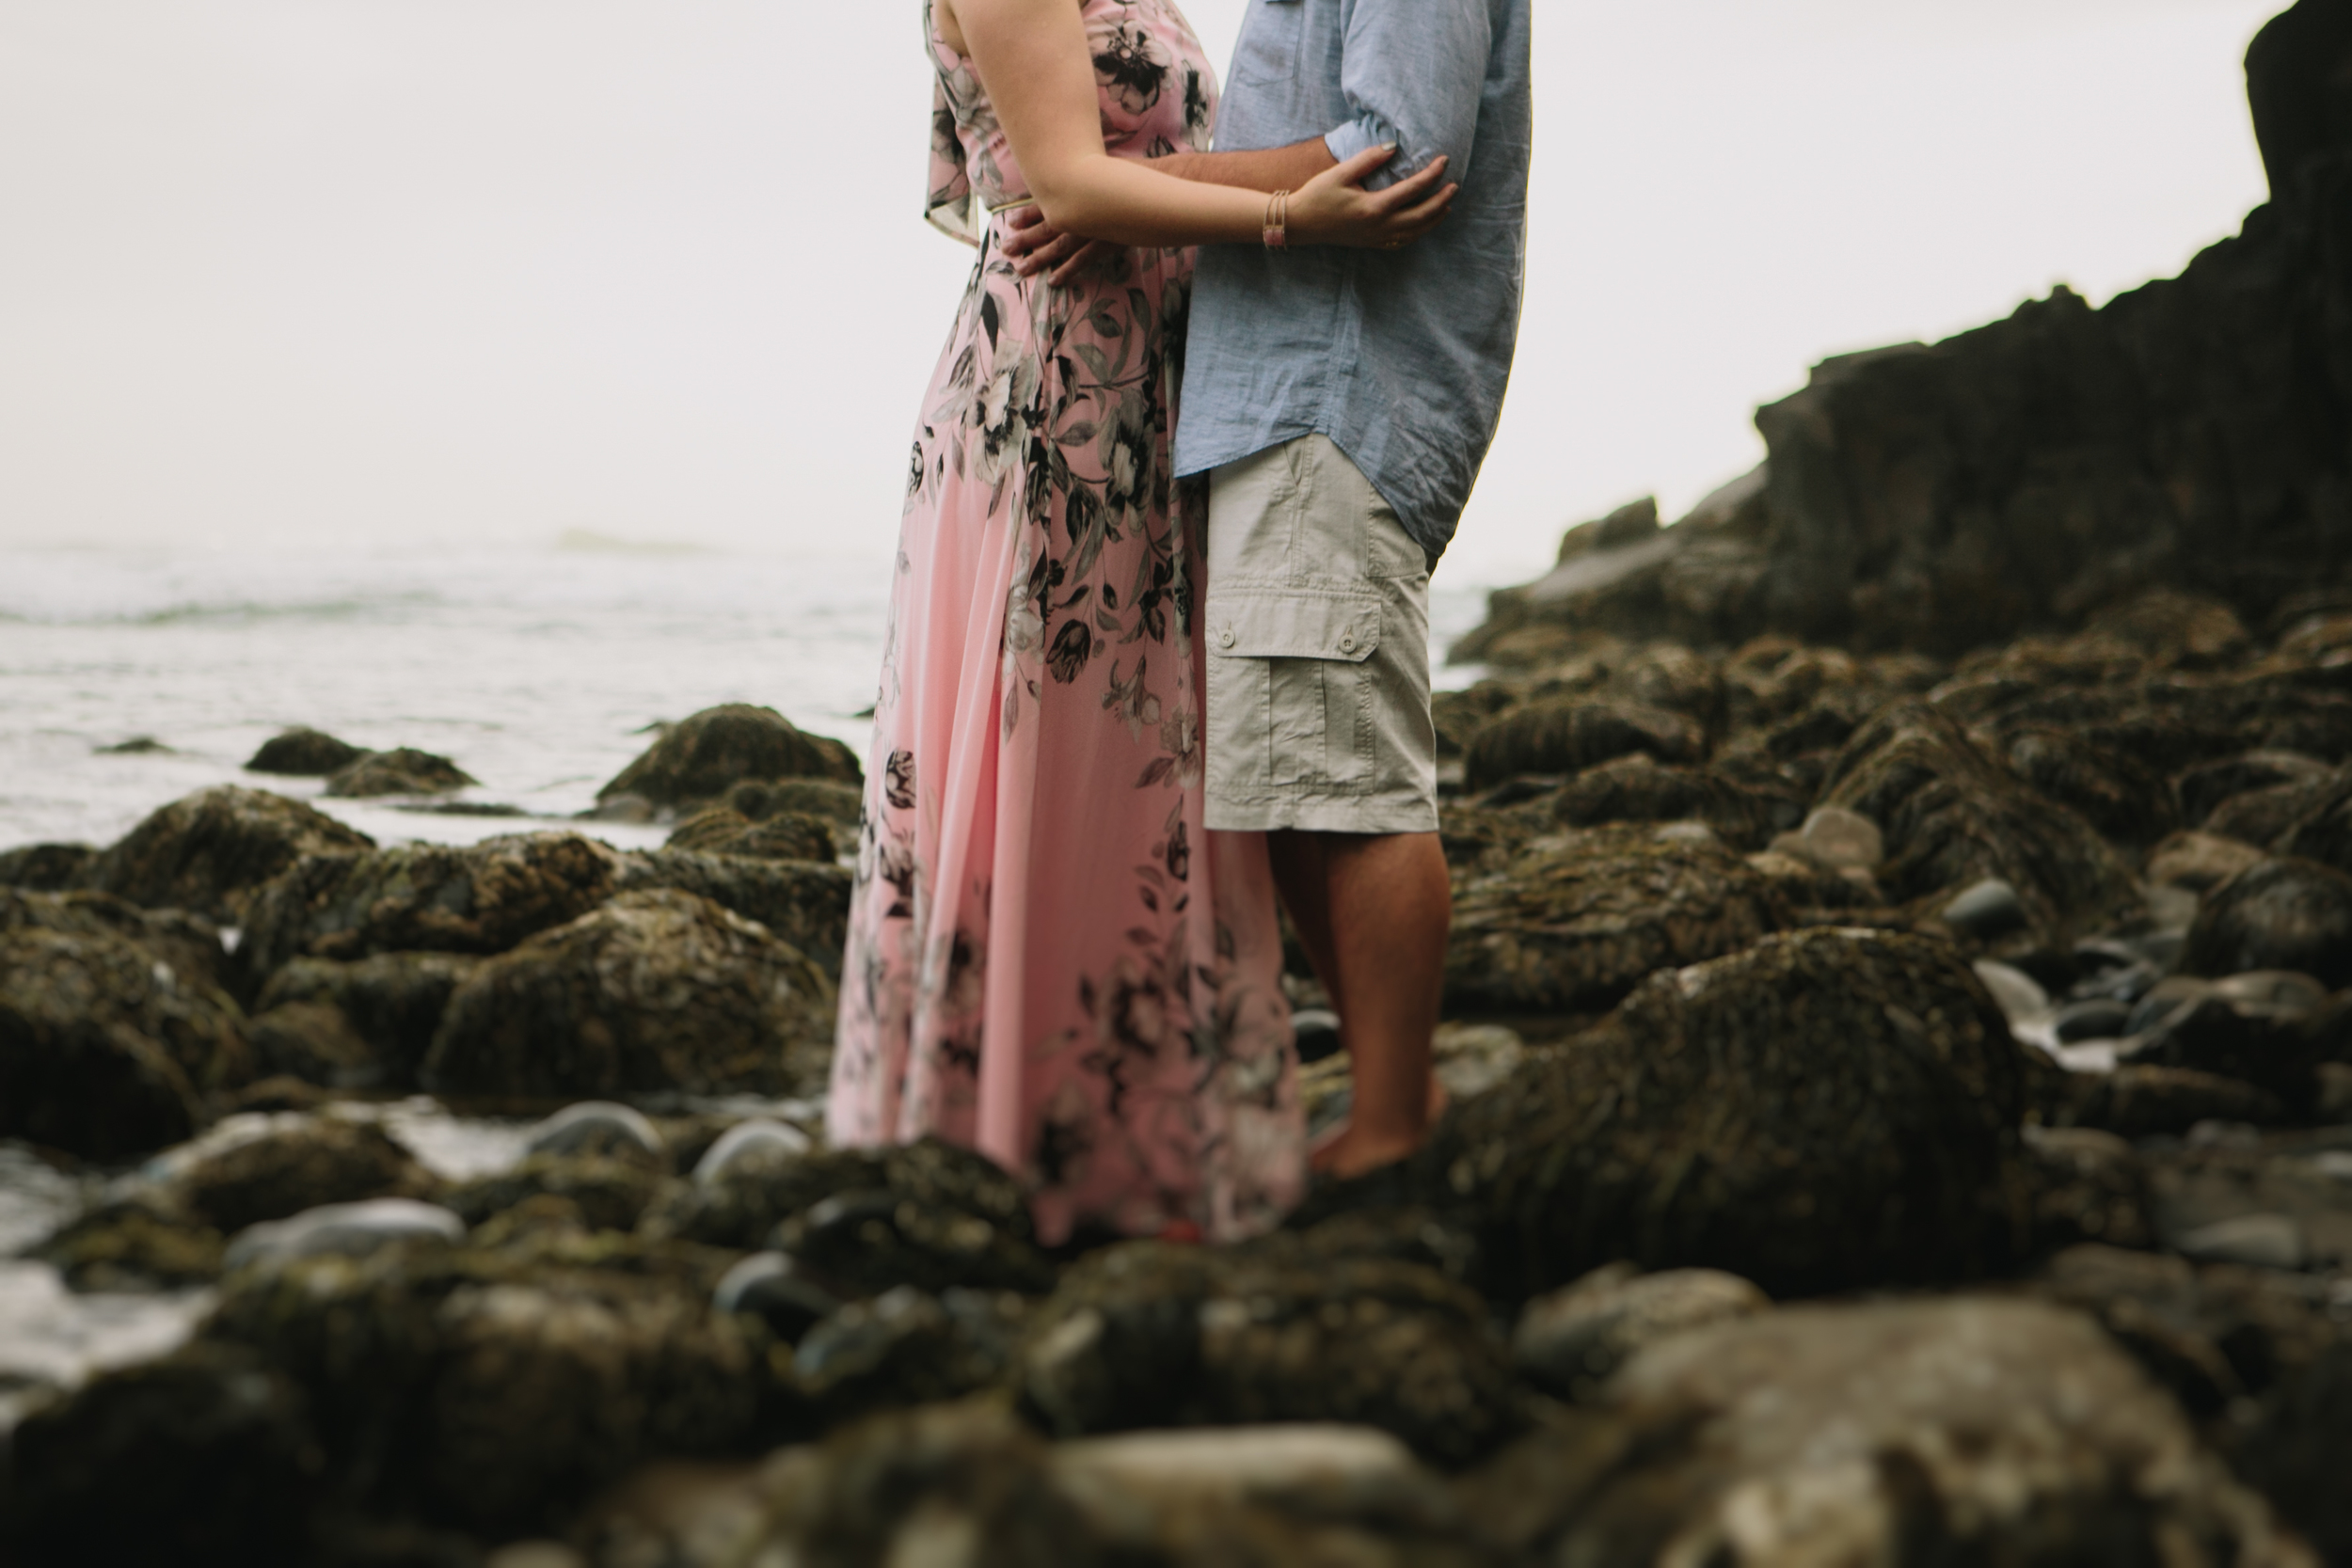 Oregon Coast Cannon Beach Engagement Session- Grace and Jaden photography (14).jpg